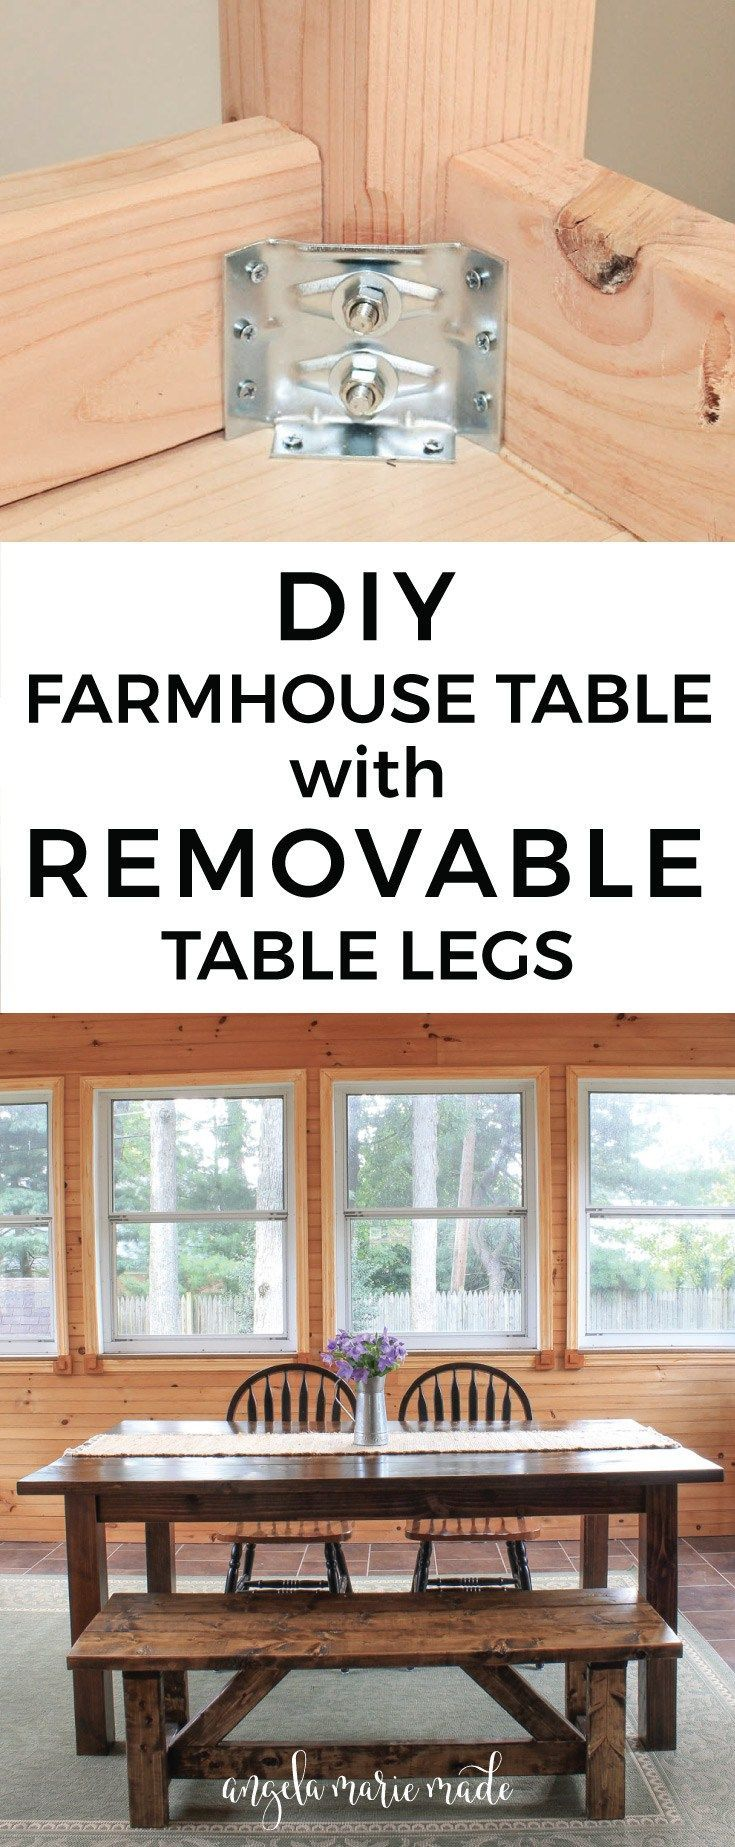 How to build a farmhouse table with removable legs. Click to get the free build ...